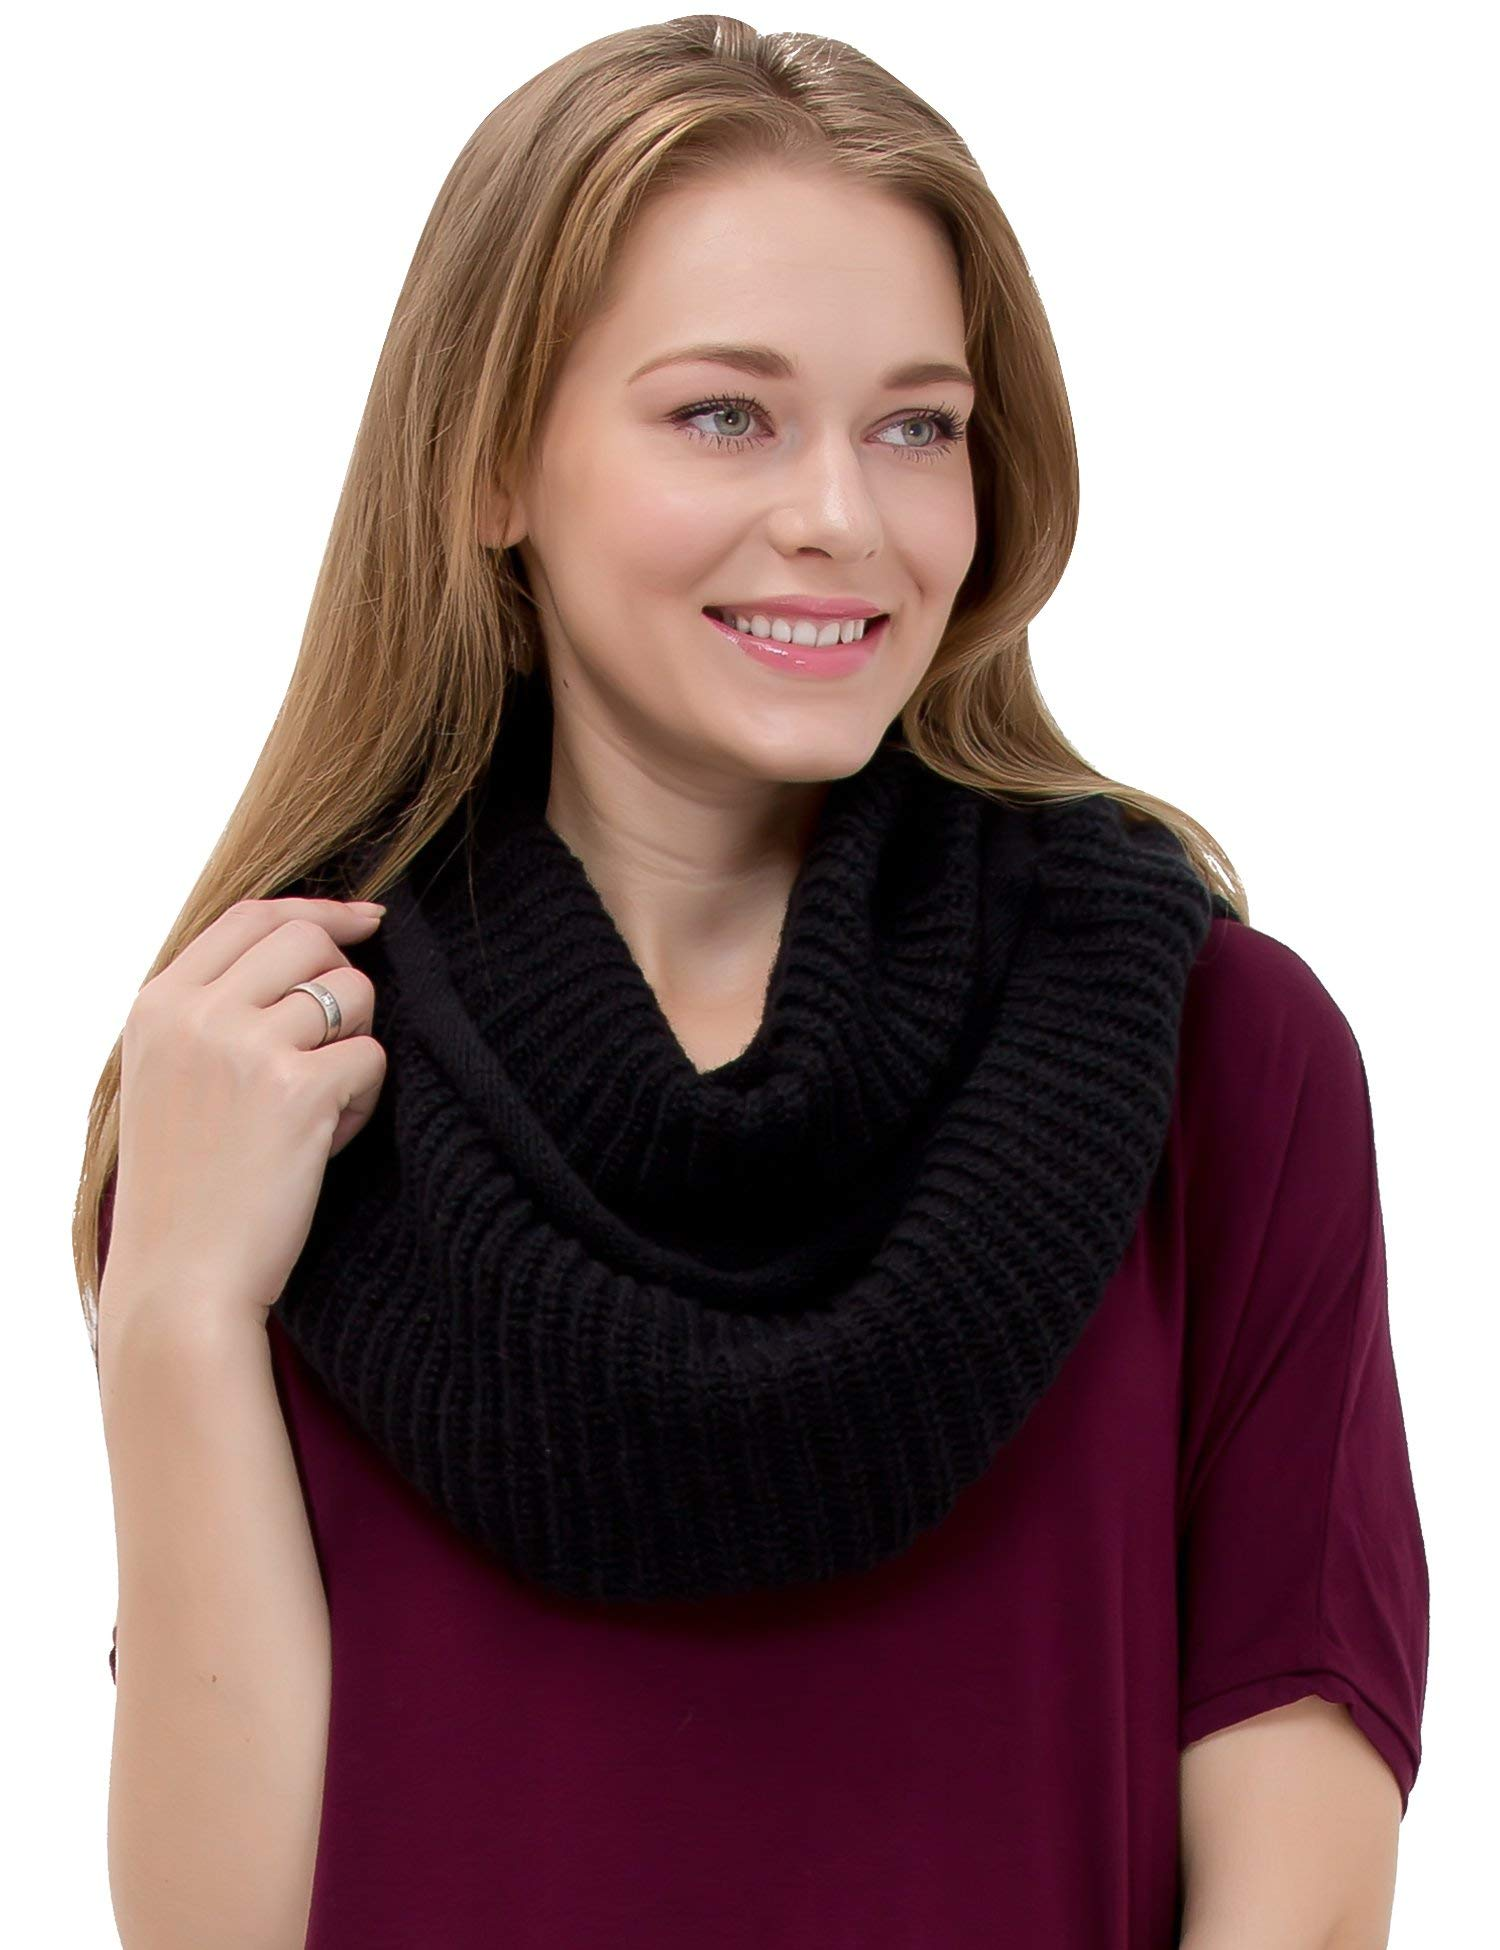 Women's Winter Warm Thick Chunky Rib Knit Infinity Loop Scarf Beauty Gift (black) by Dimore